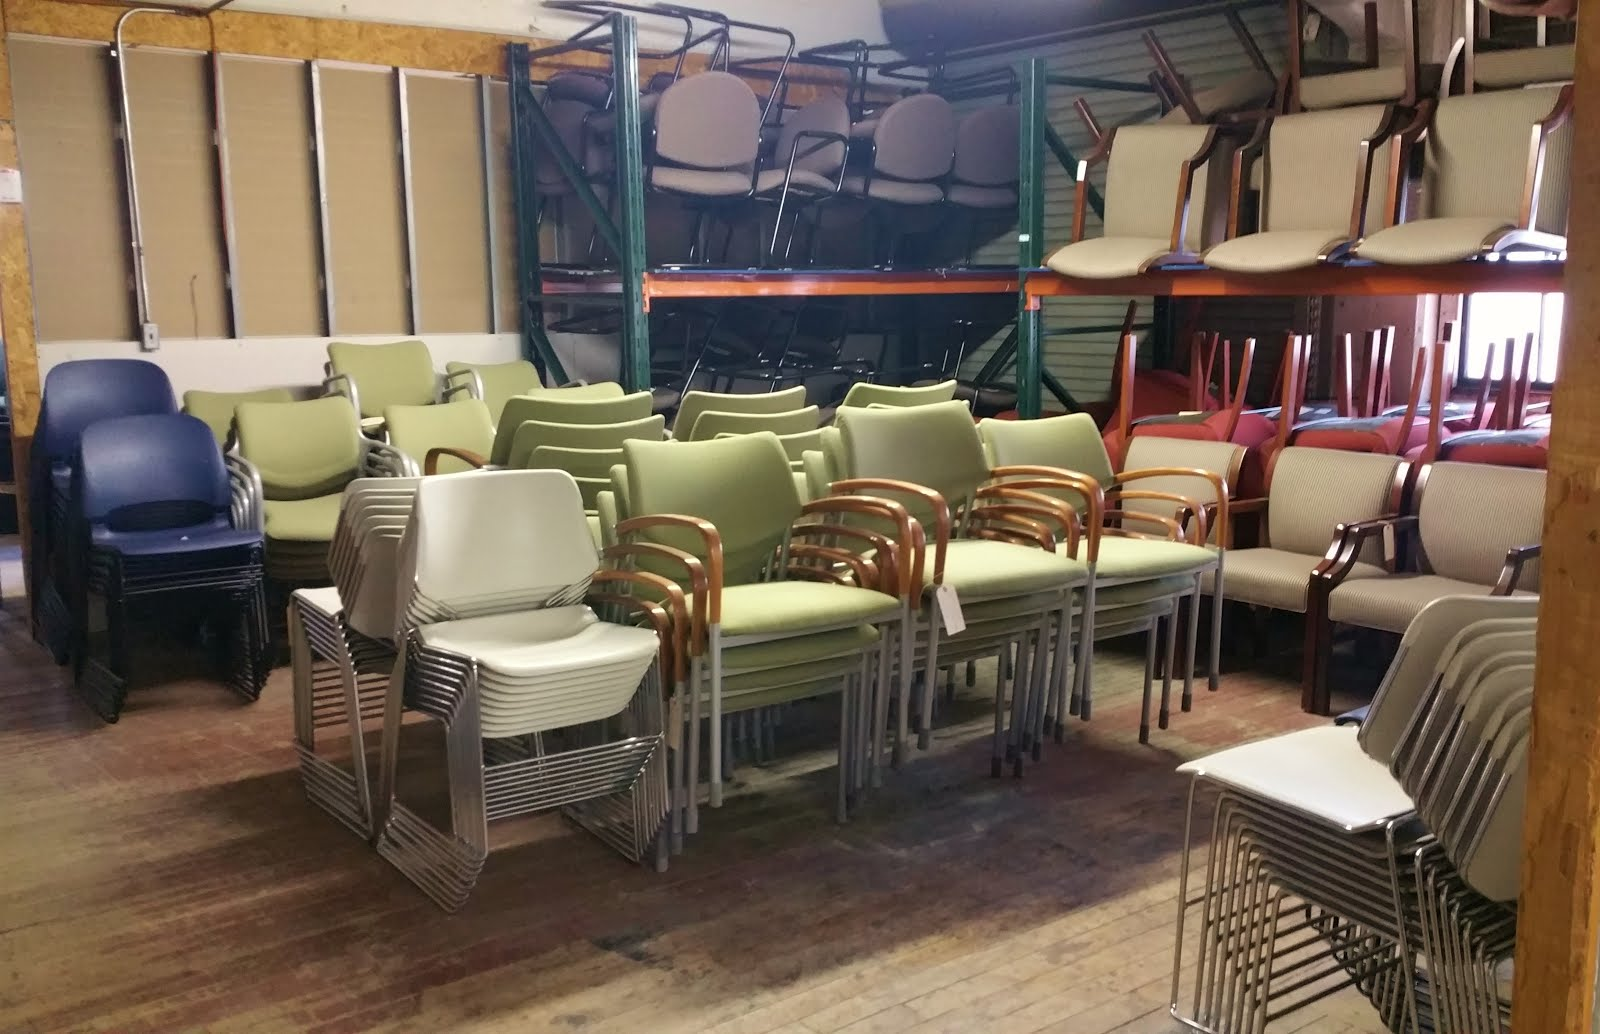 1,000's Of Chairs ALWAYS AVAILABLE !